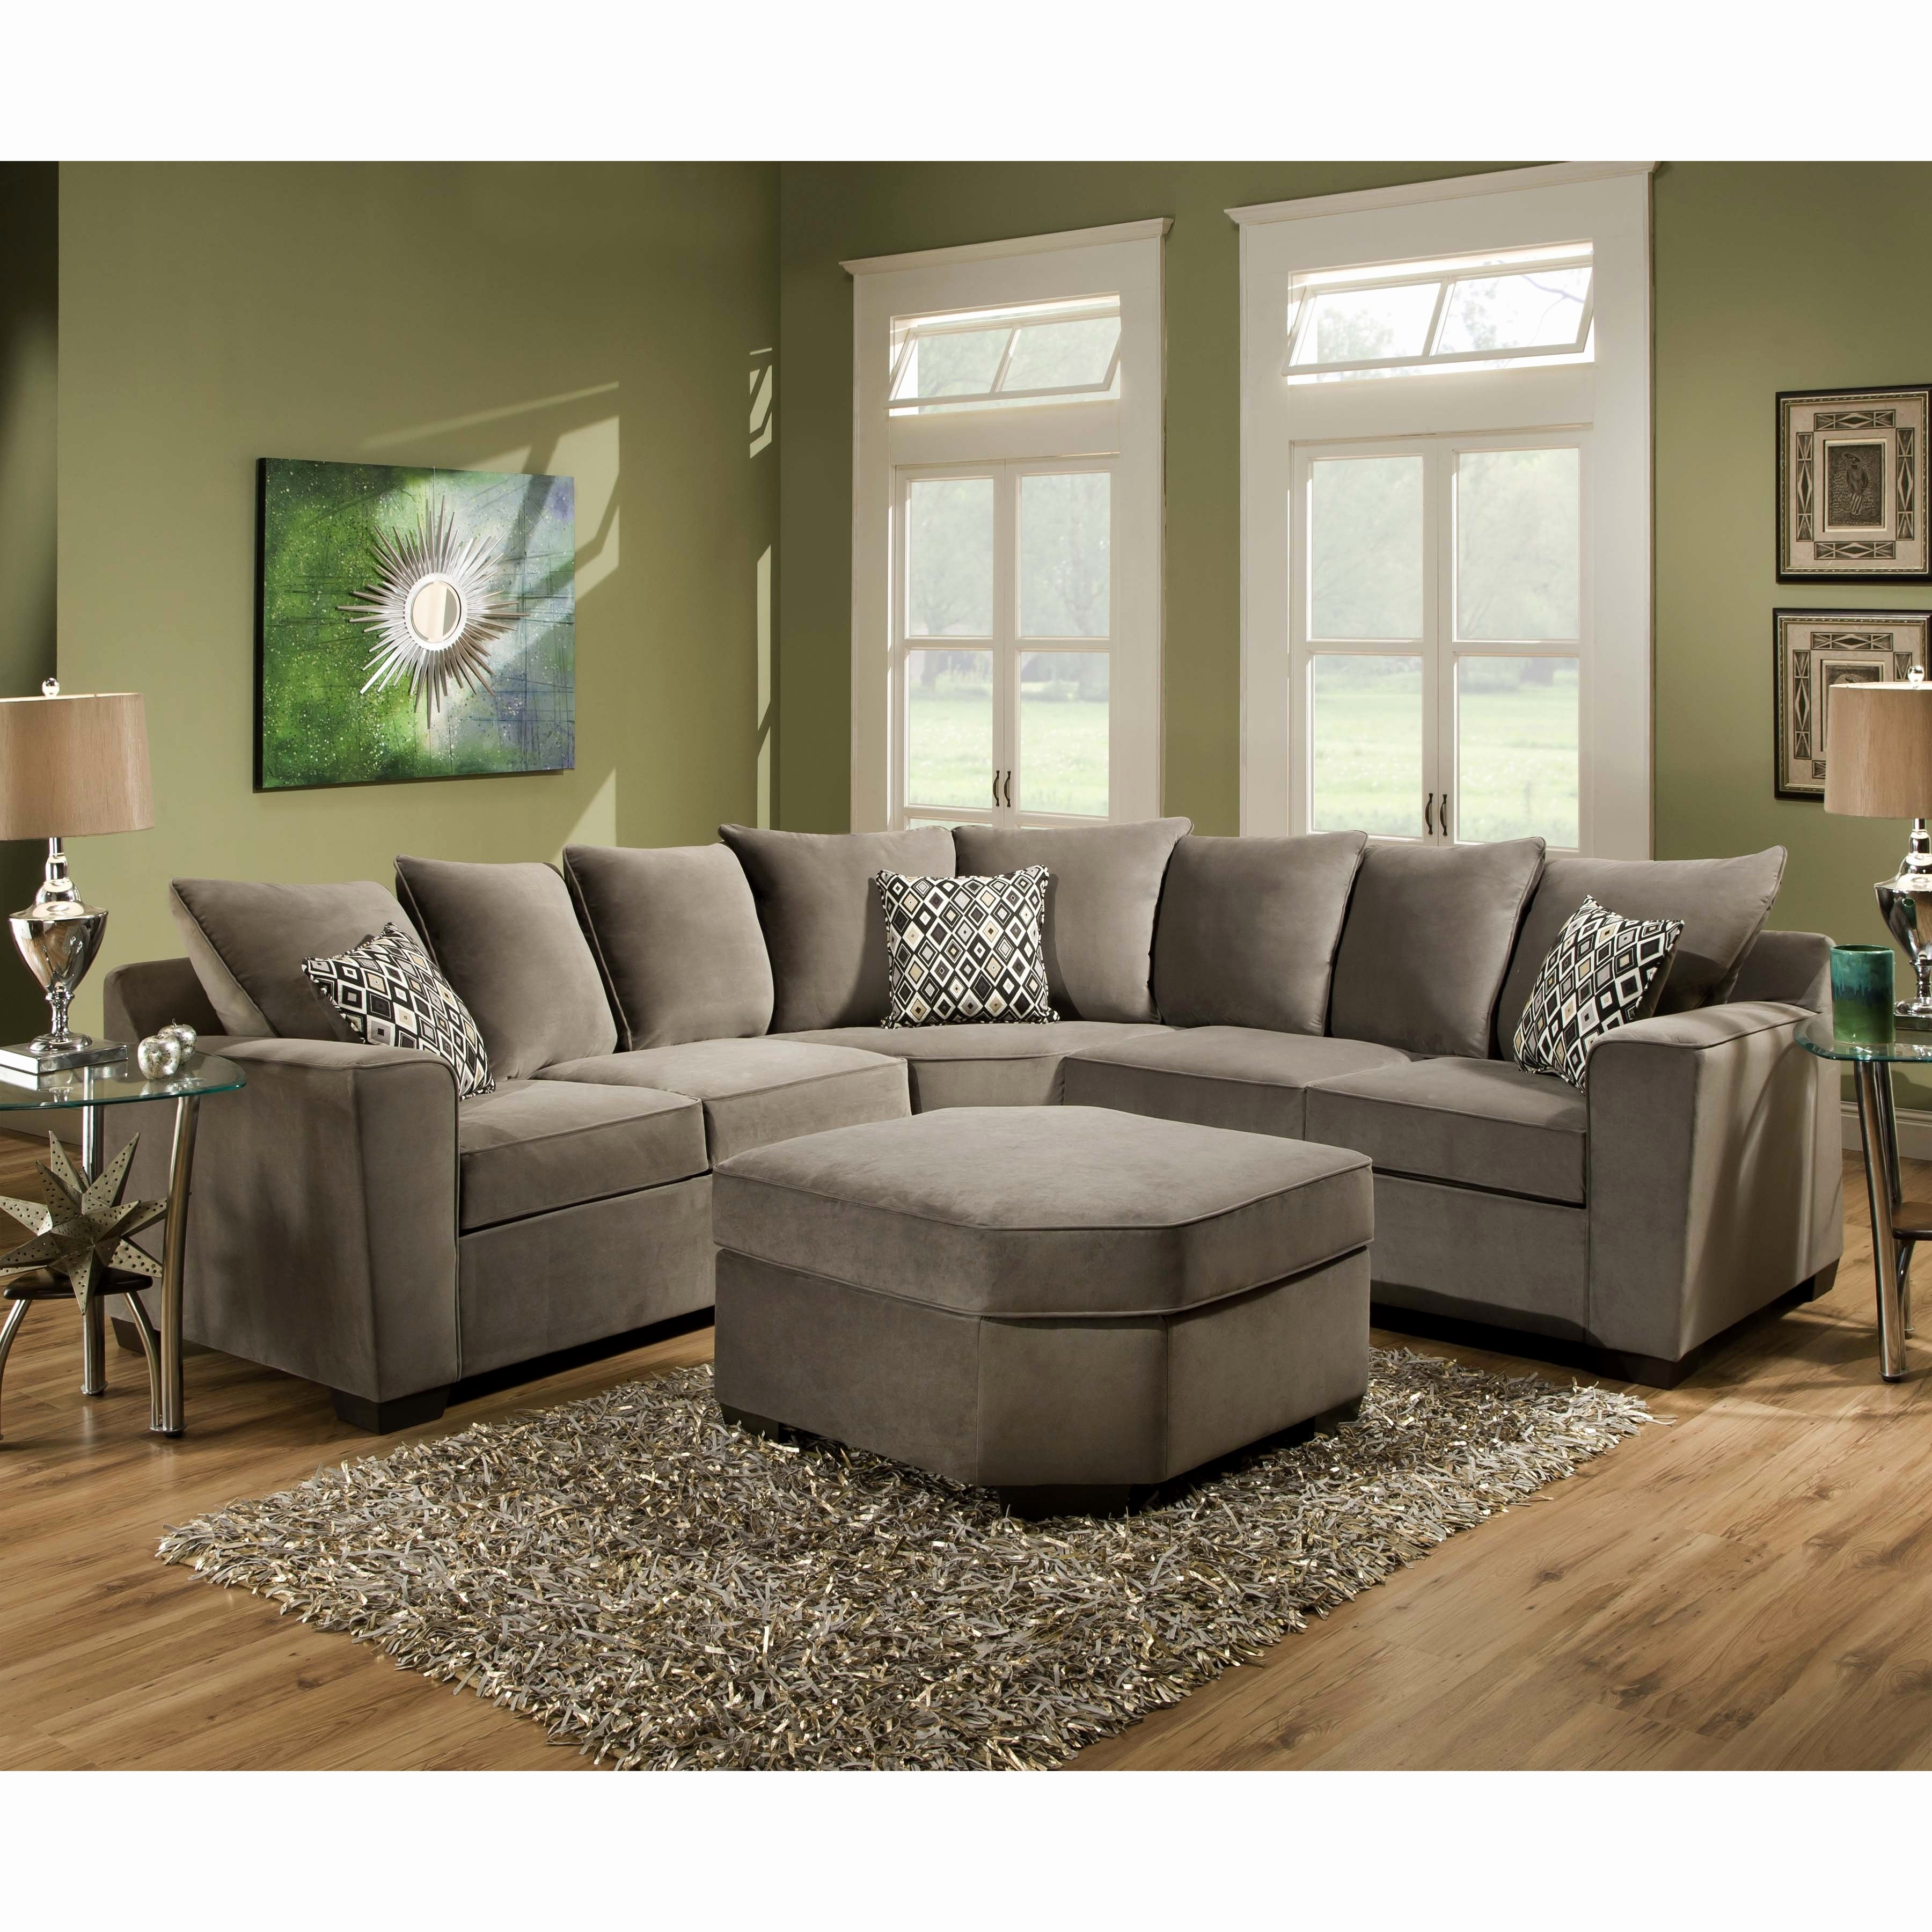 New Microfiber Sectional Couch With Recliner 2018 – Couches And Throughout Sectional Sofas At Sears (Photo 7 of 15)